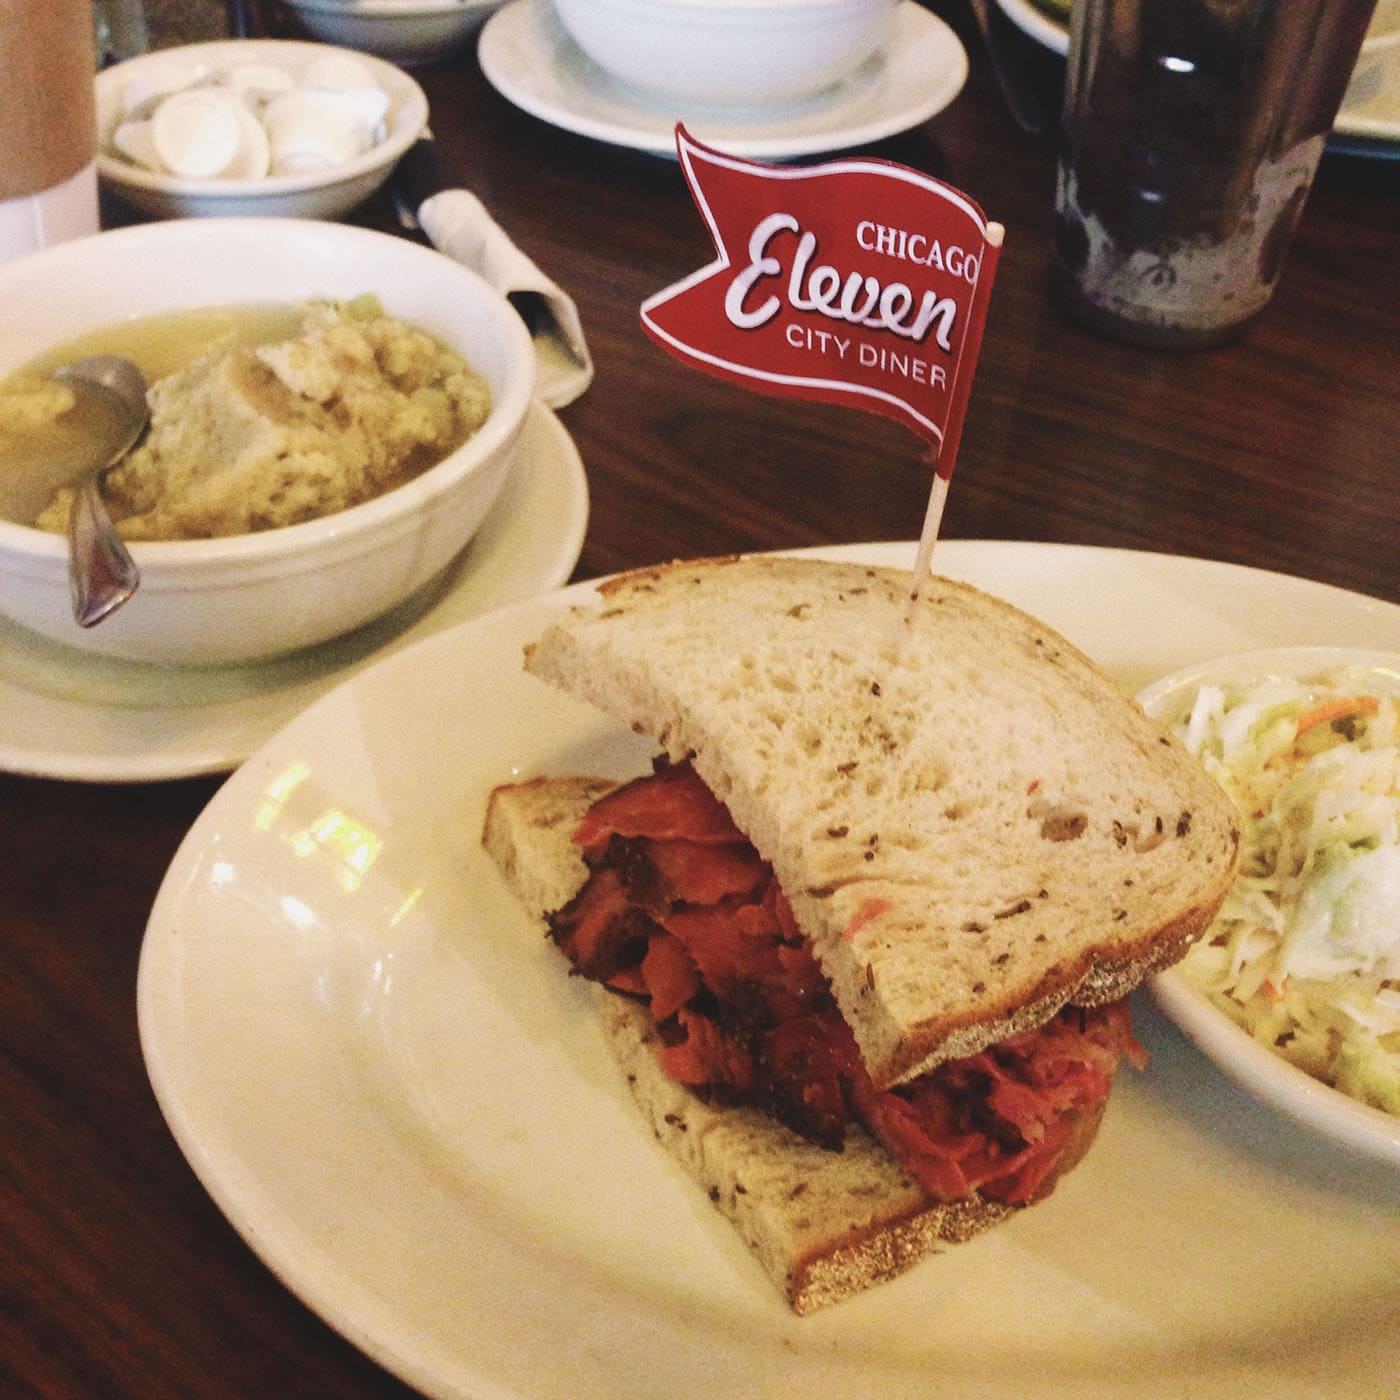 Pastrami sandwich from Eleven City Diner